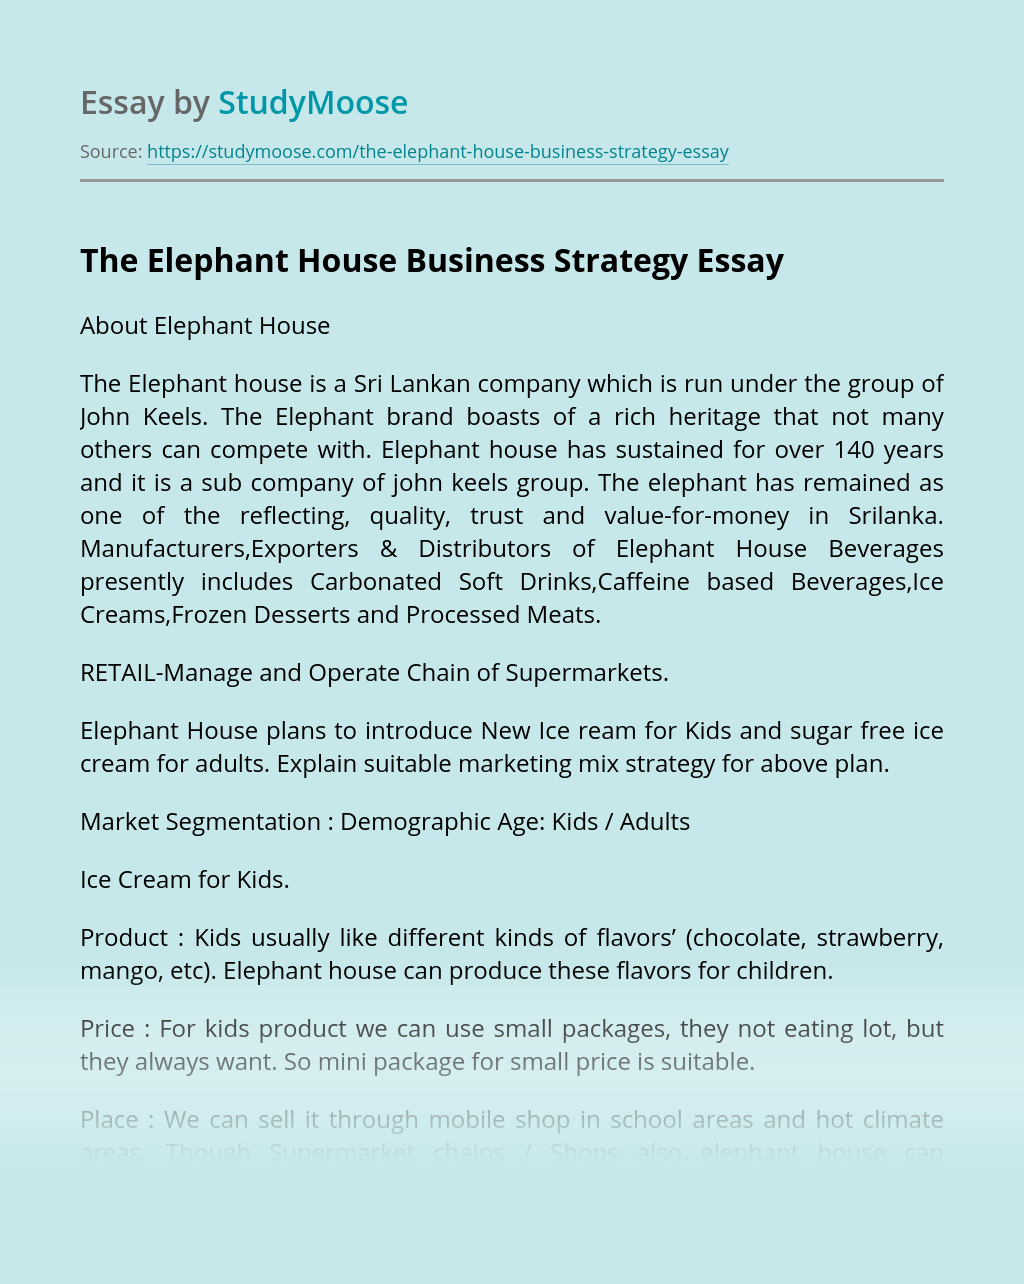 The Elephant House Business Strategy